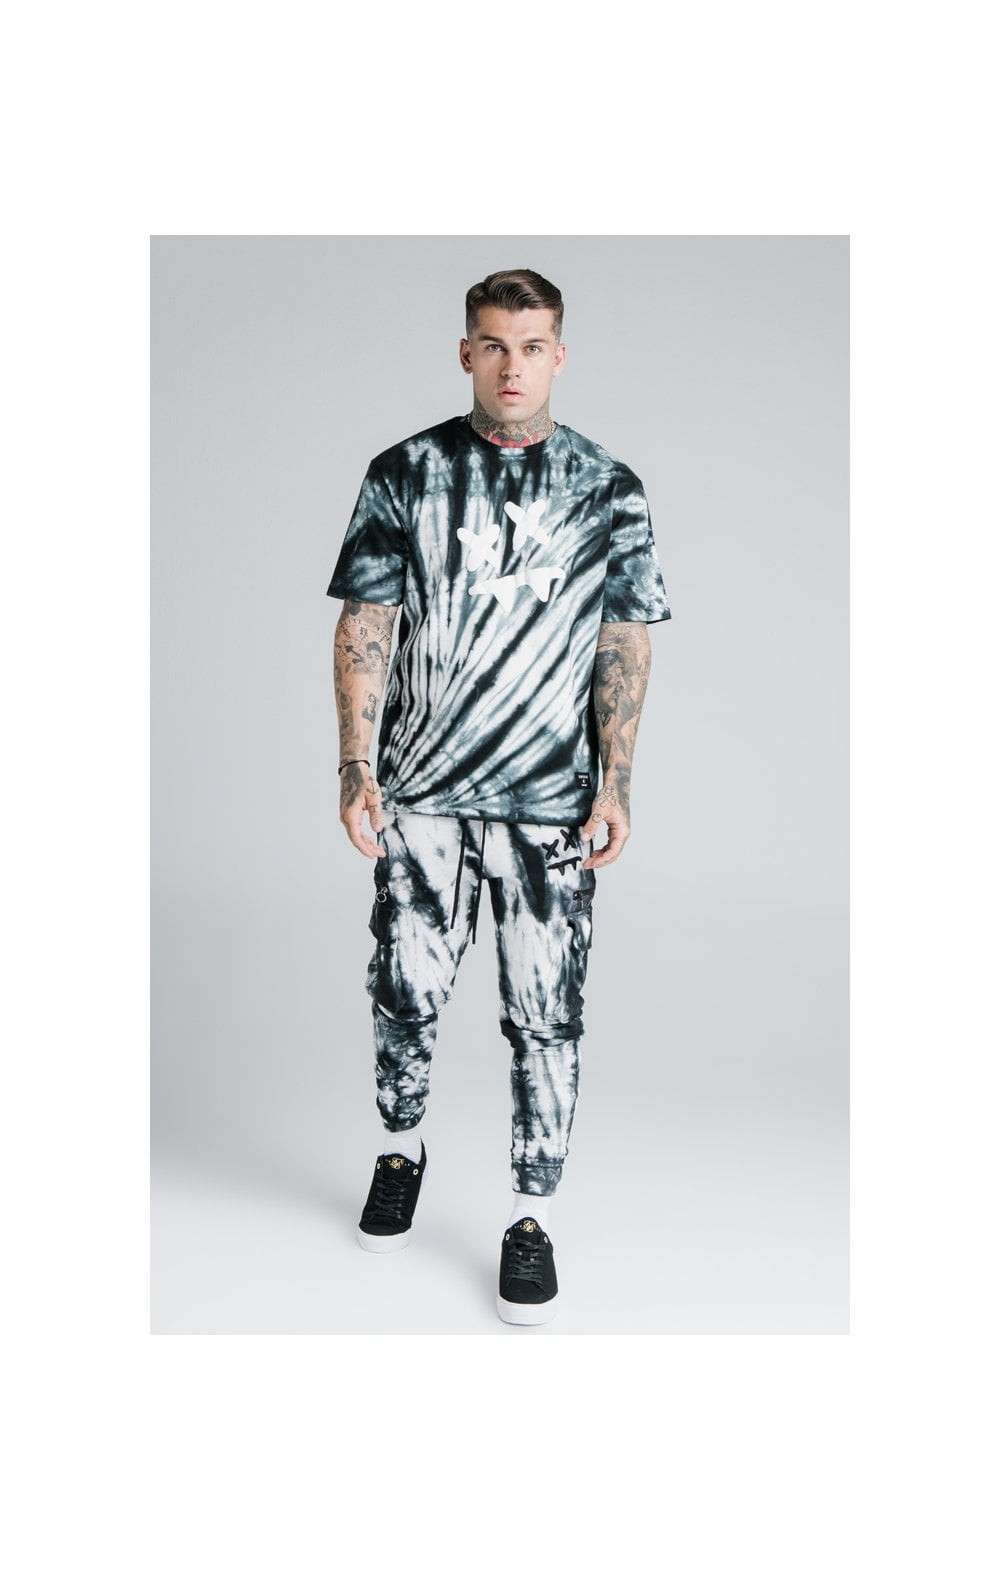 Load image into Gallery viewer, SikSilk X Steve Aoki S/S Oversize Essential Tee – Black & White Tie Dye (5)